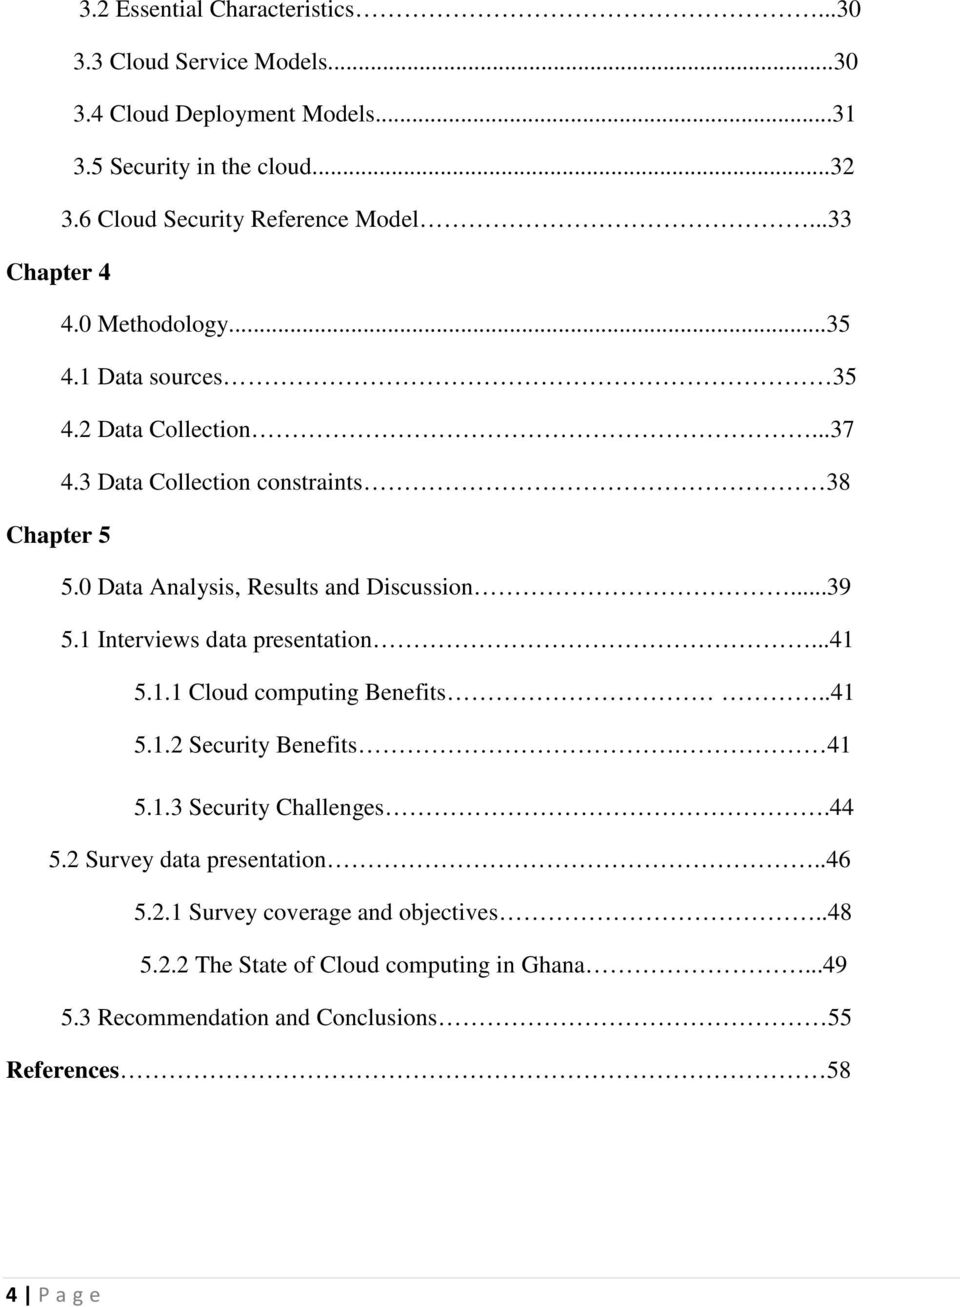 Phd thesis in cloud computing security